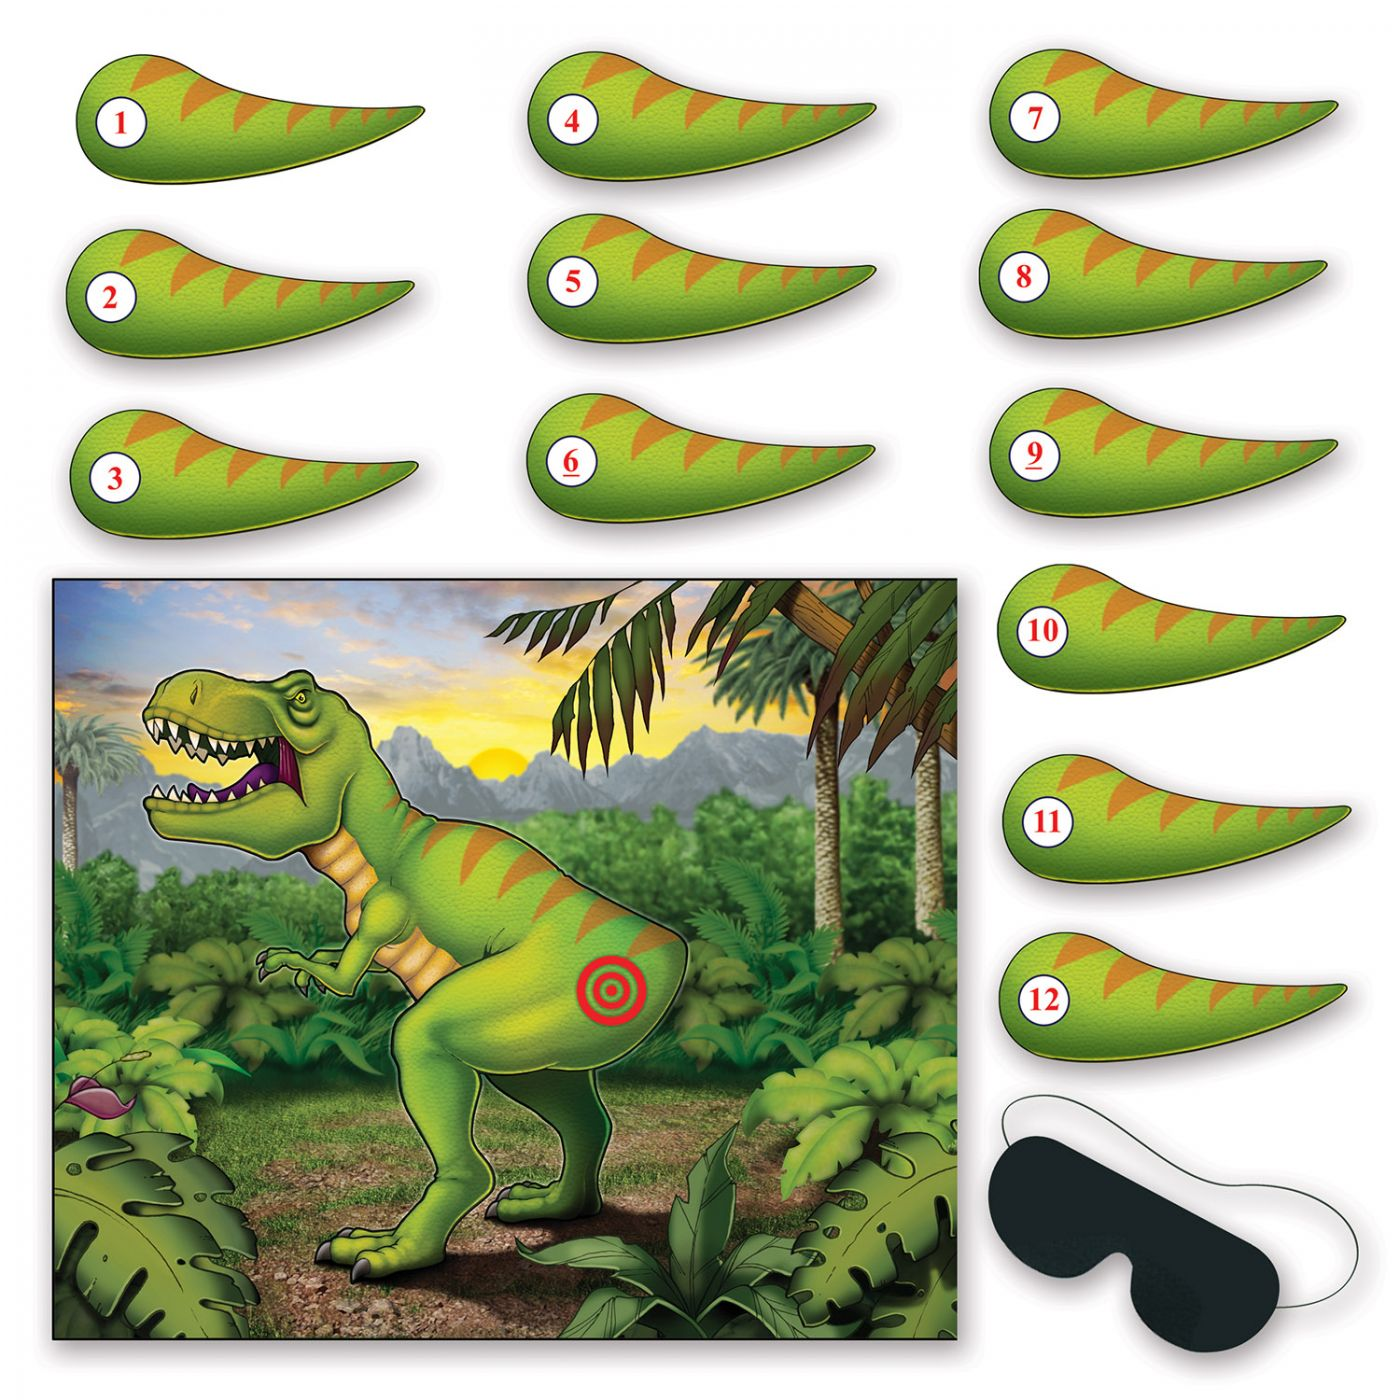 Pin The Tail On The Dinosaur Game (24) image